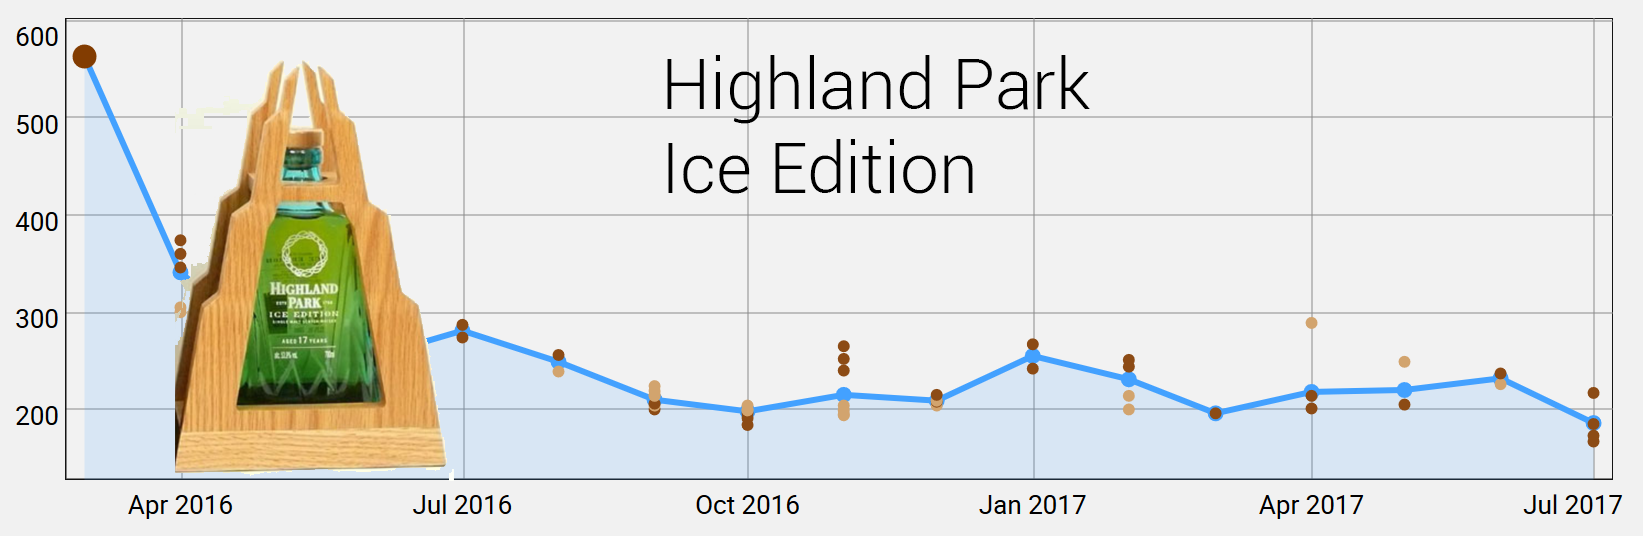 Highland Park Ice Edition